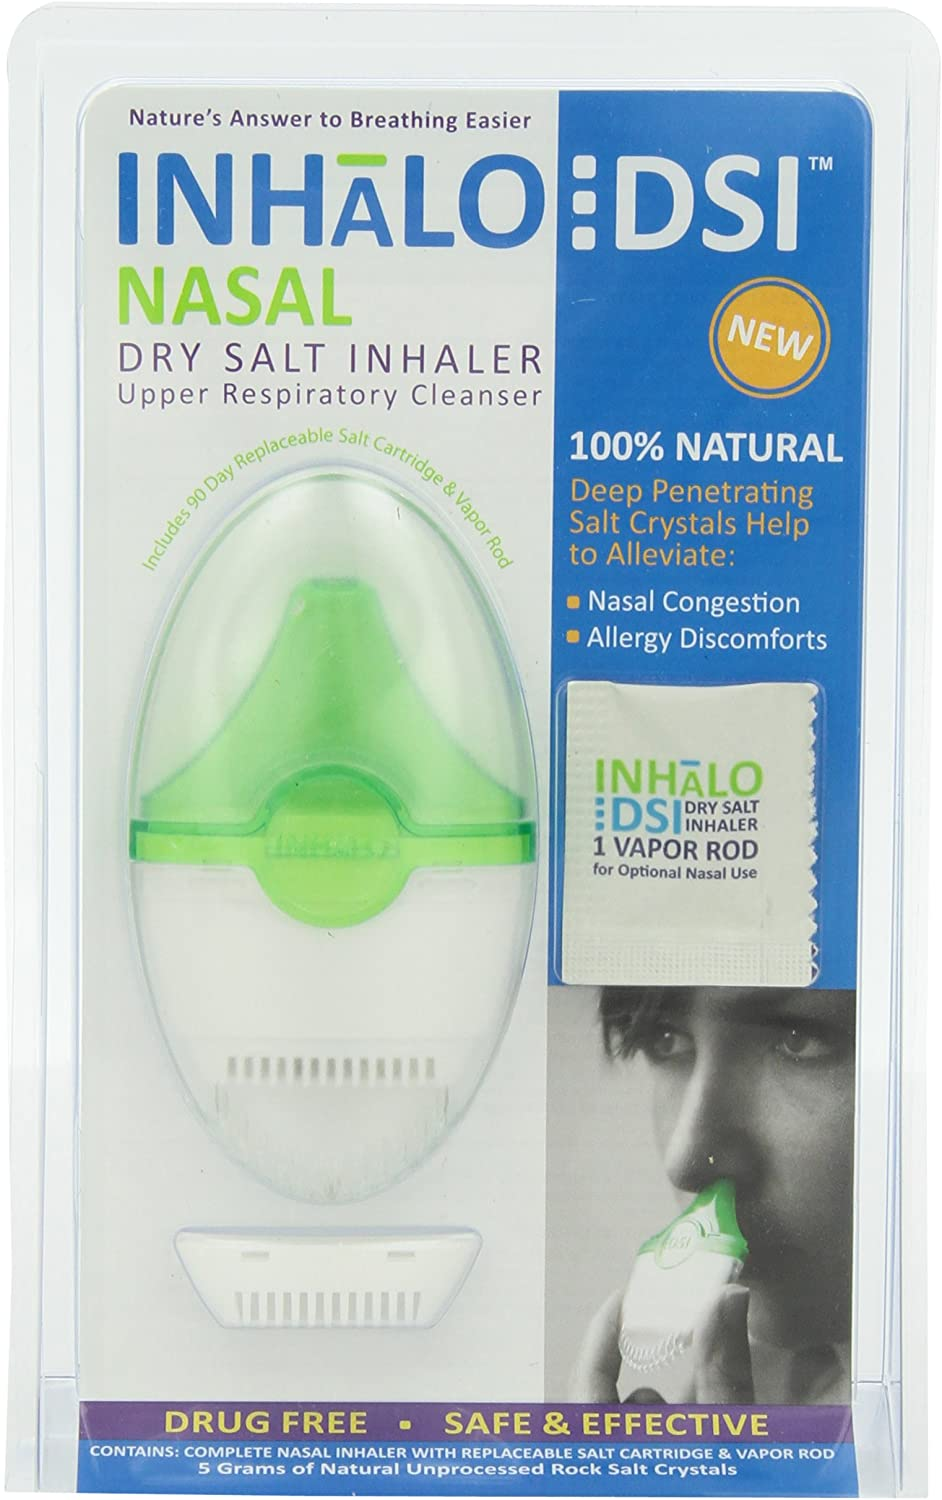 SinuCleanse INHaLo Nasal Dry Salt Inhaler with Cooling Vapors - Contains 100% All-Natural Deep Penetrating Salt Crystals to Help You Breathe Easier-1 Portable, Ready-To-Use Upper Respiratory Inhaler